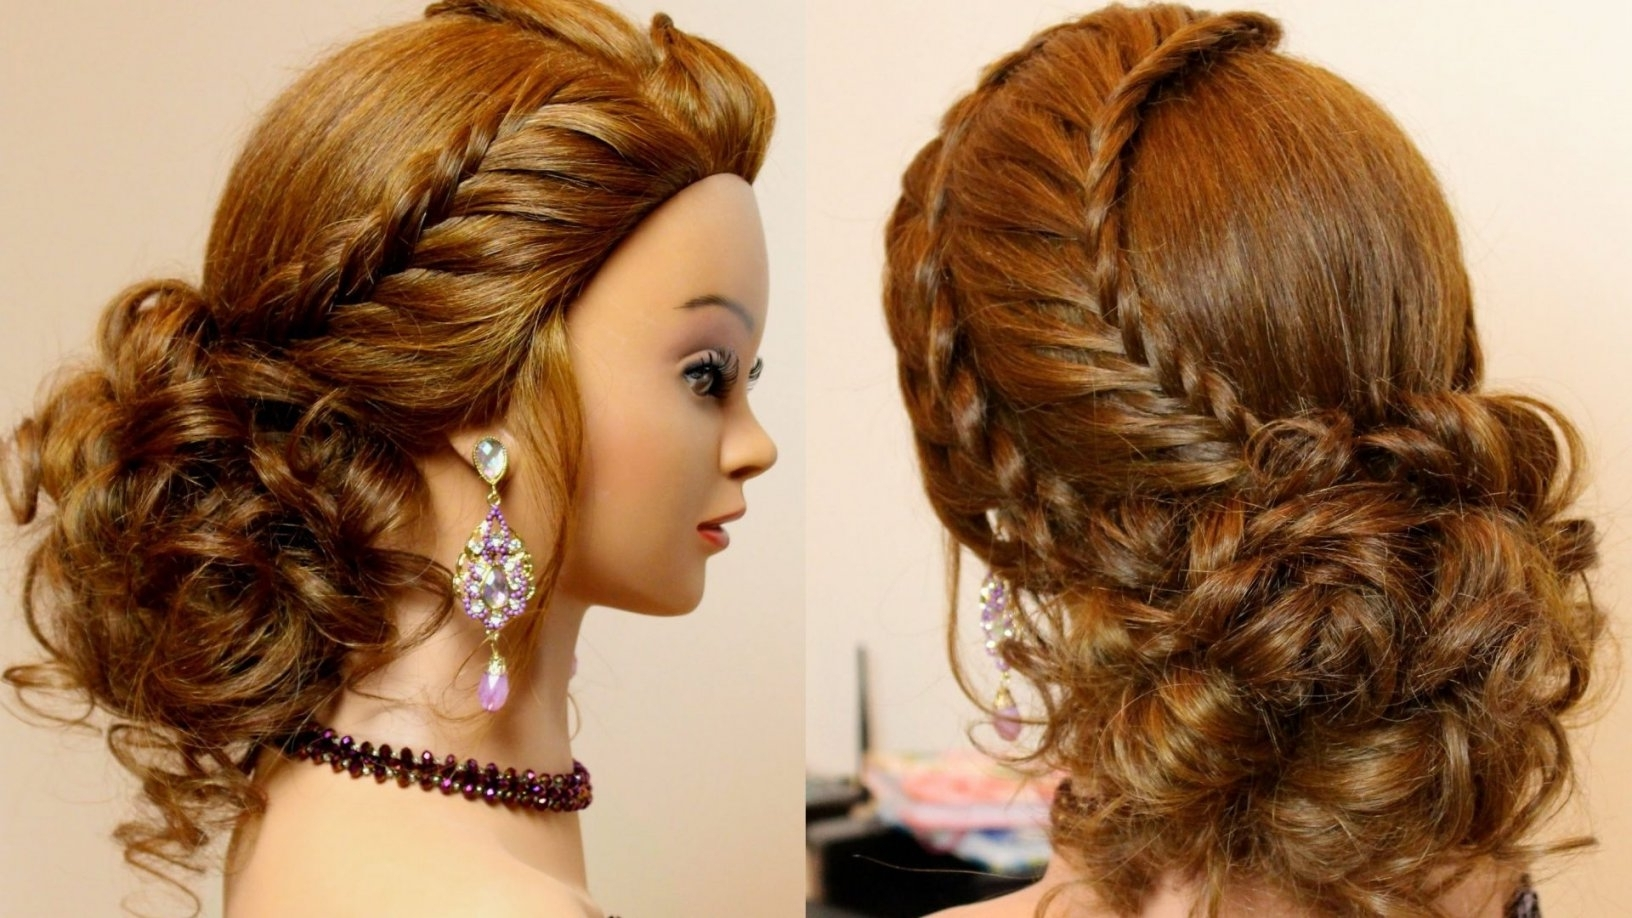 Updo Hairstyles For Long Thick Hair Impressive Updos To The Side Throughout Hair Updo Hairstyles For Thick Hair (View 15 of 15)